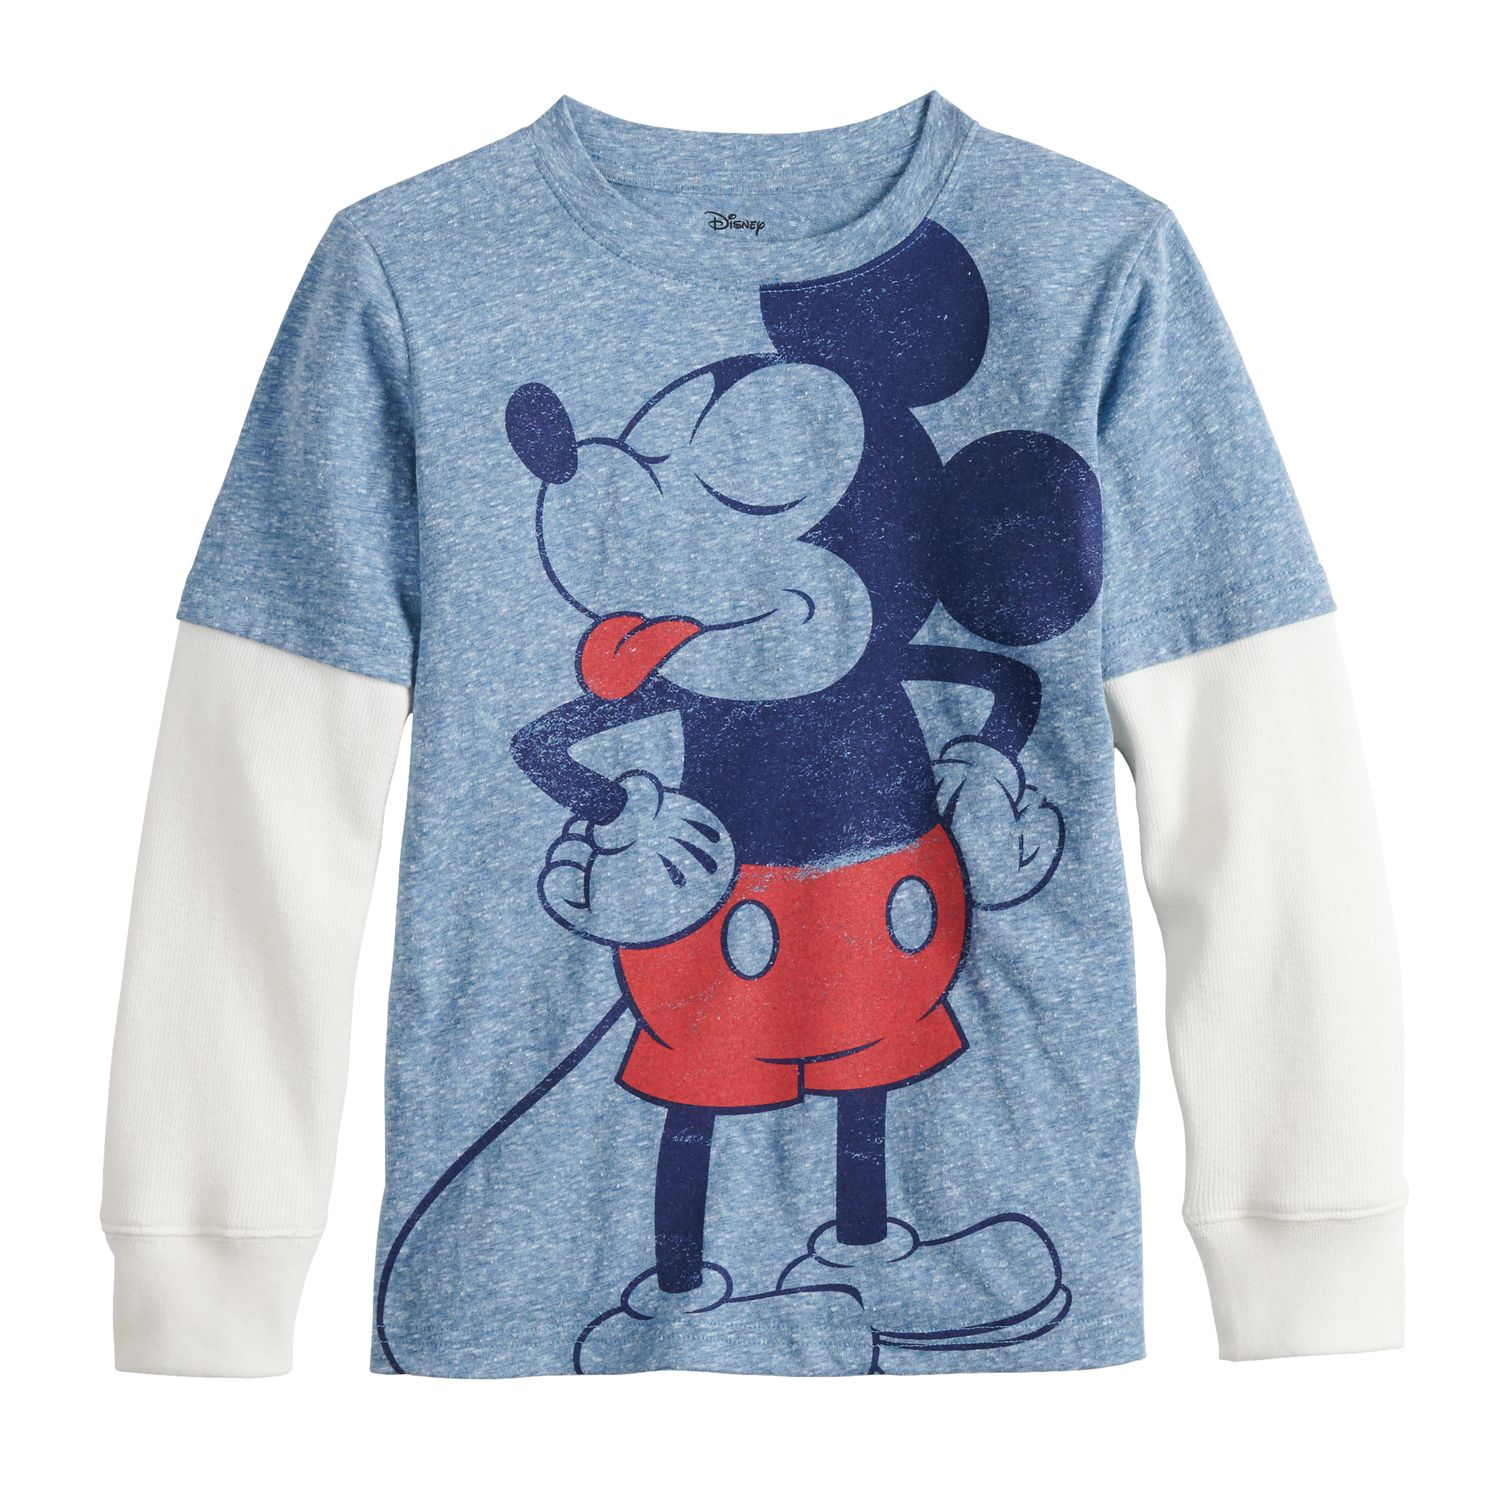 blue mickey mouse \u0026 friends kohl\u0027sboys 4 12 disney\u0027s mickey mouse sassy mickey graphic tee by jumping beans®